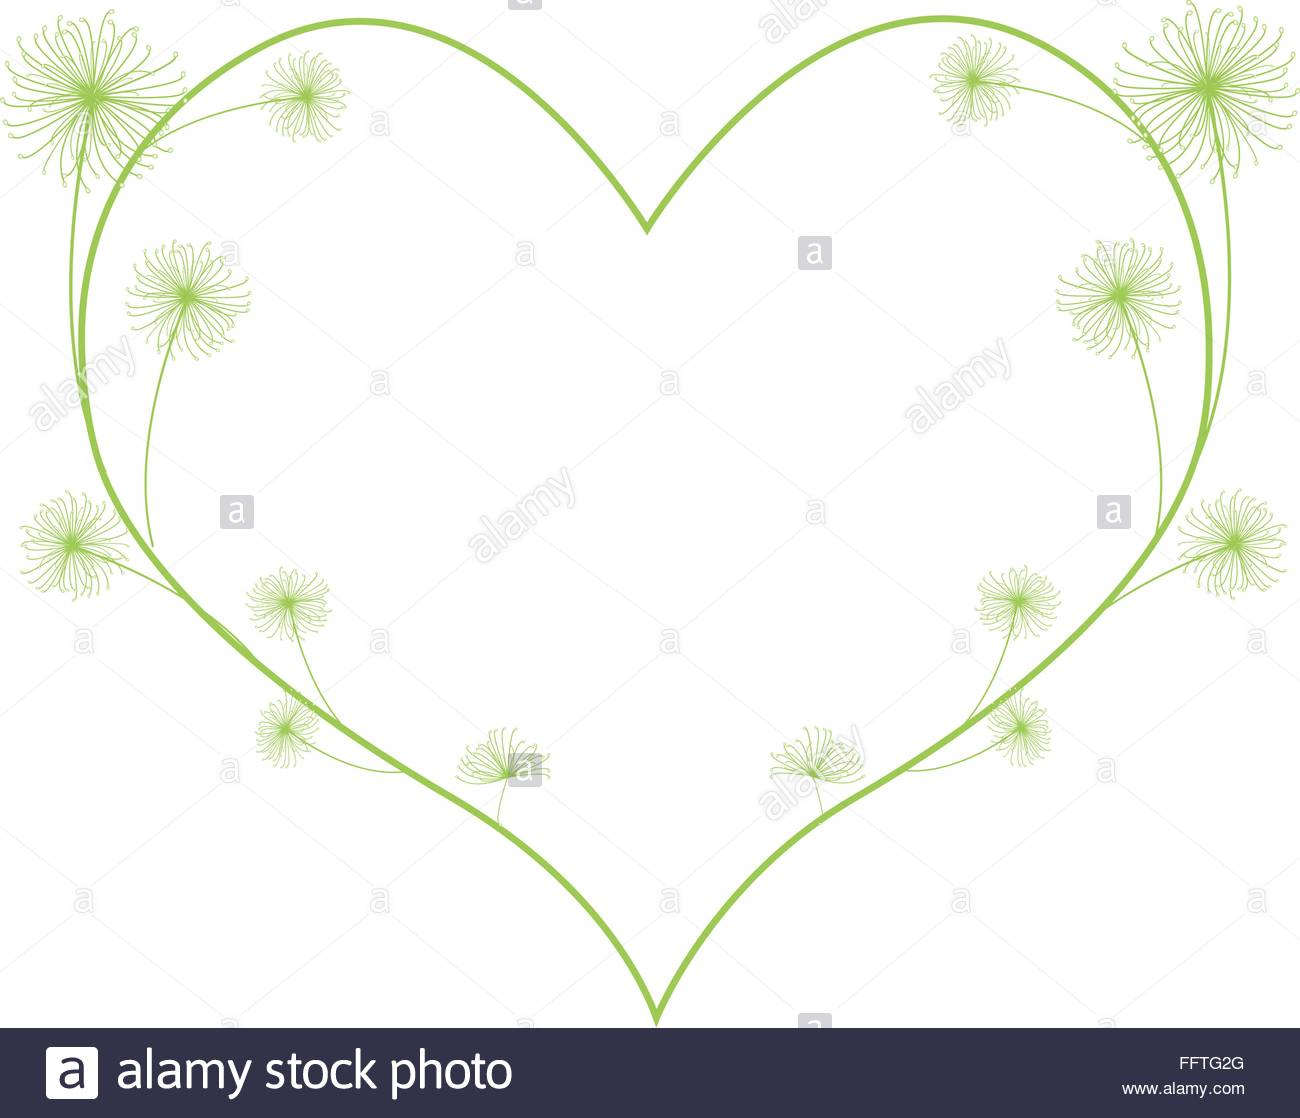 Love Concept, Illustration Of Green Egyptian Cyperus Papyrus Or.